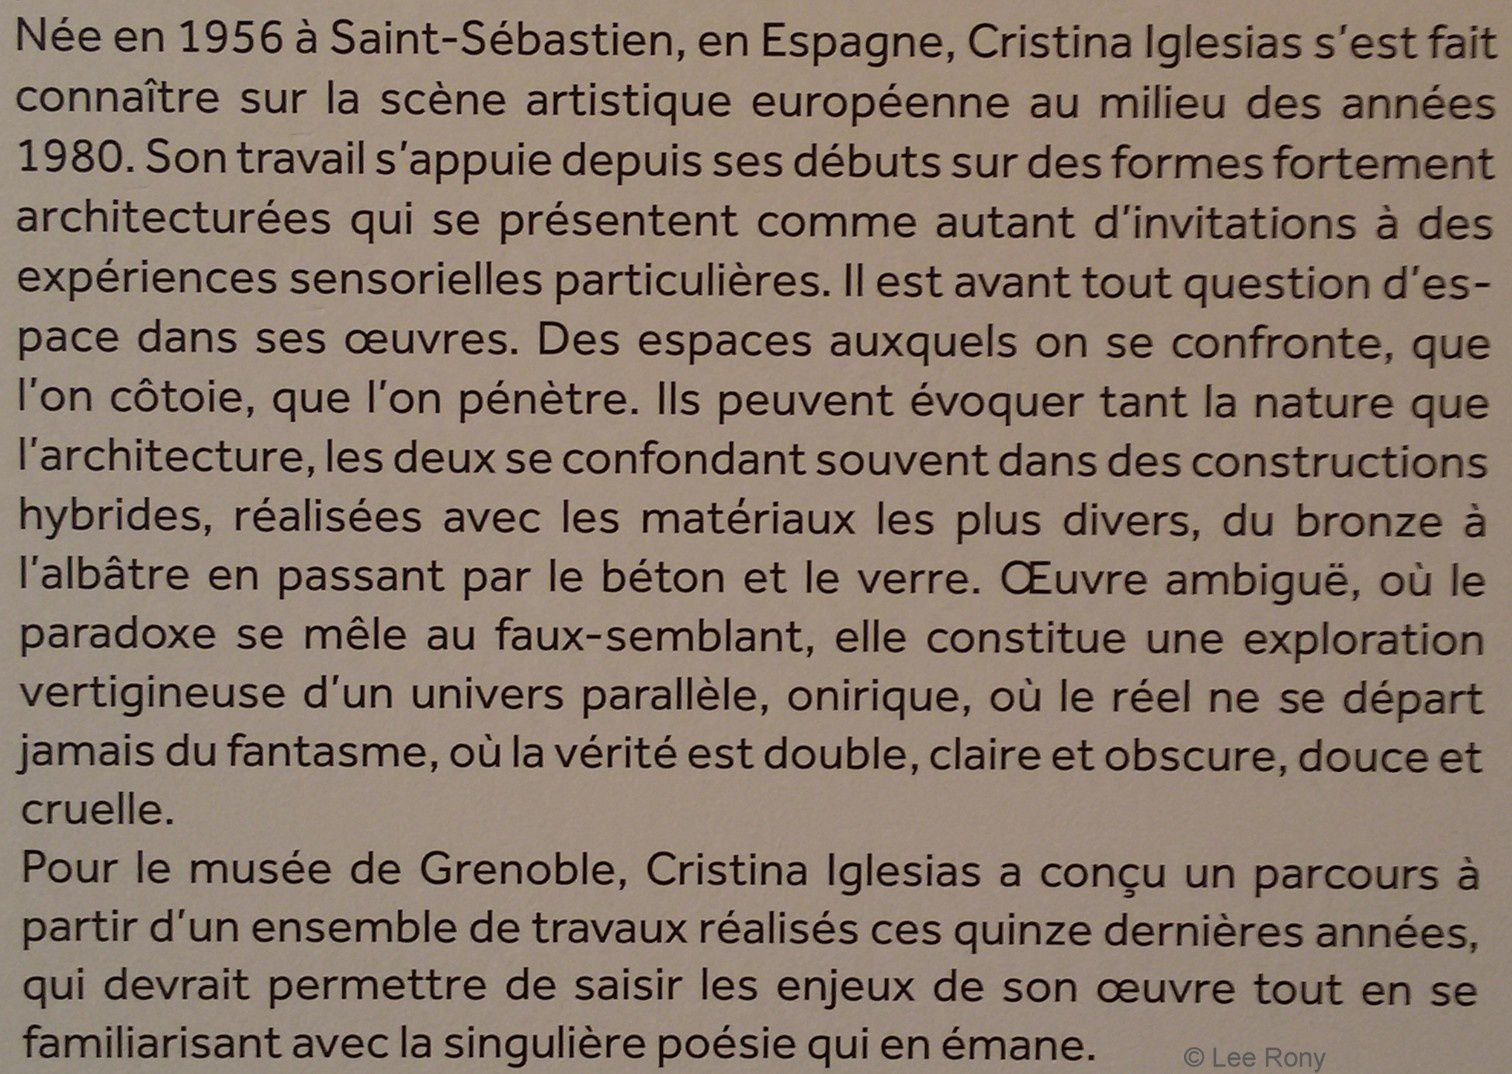 Christina Iglesias - Grenoble